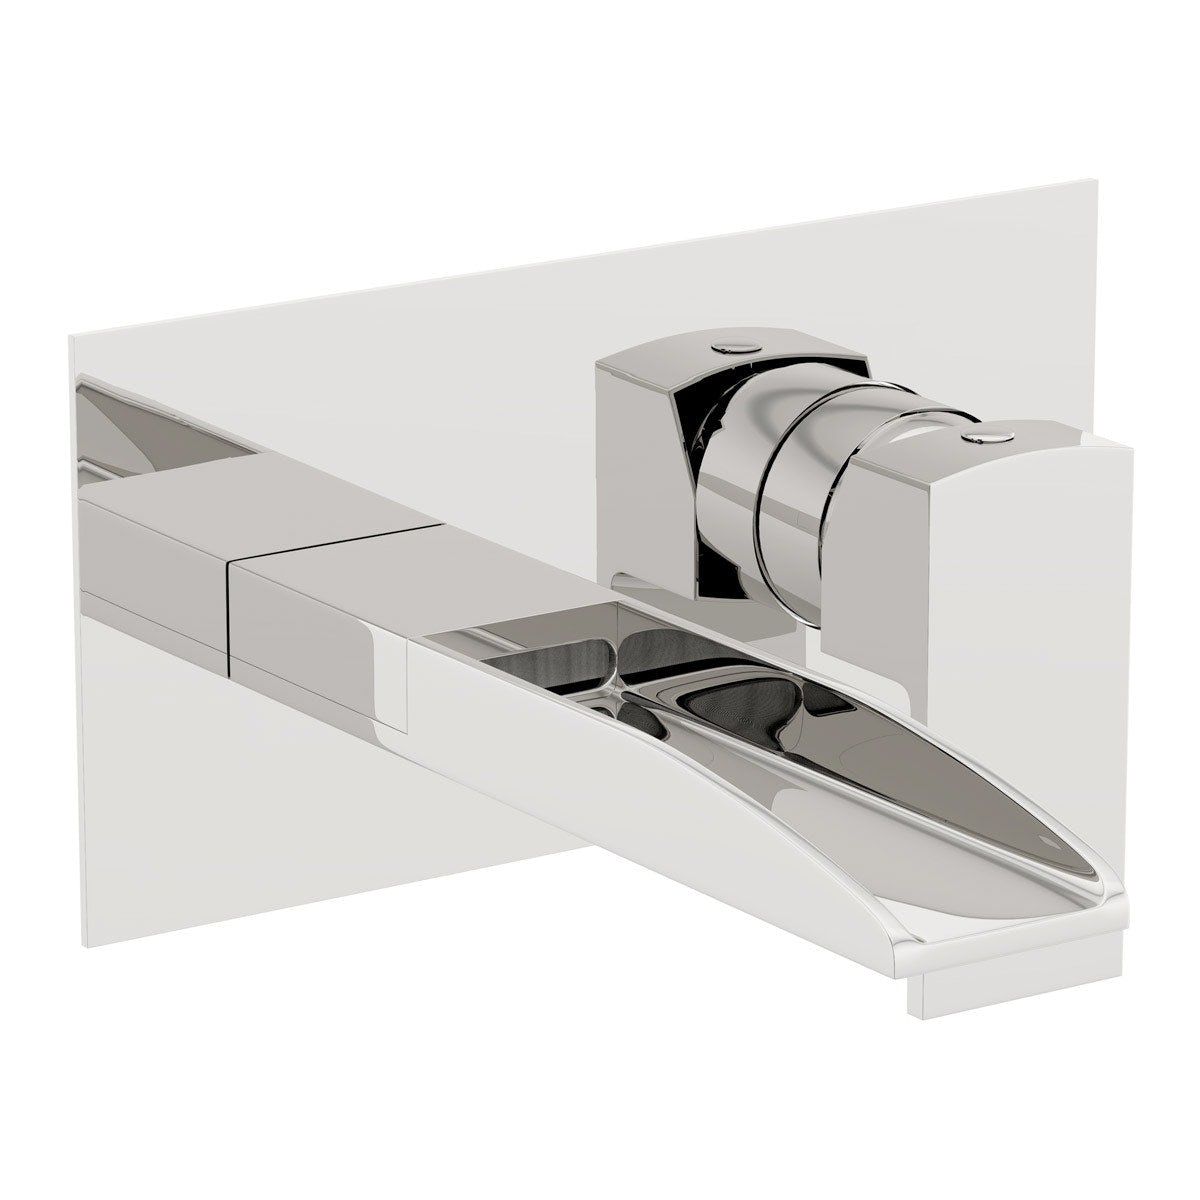 Mode cooper wall mounted basin and bath mixer tap pack for Waterfall delivery